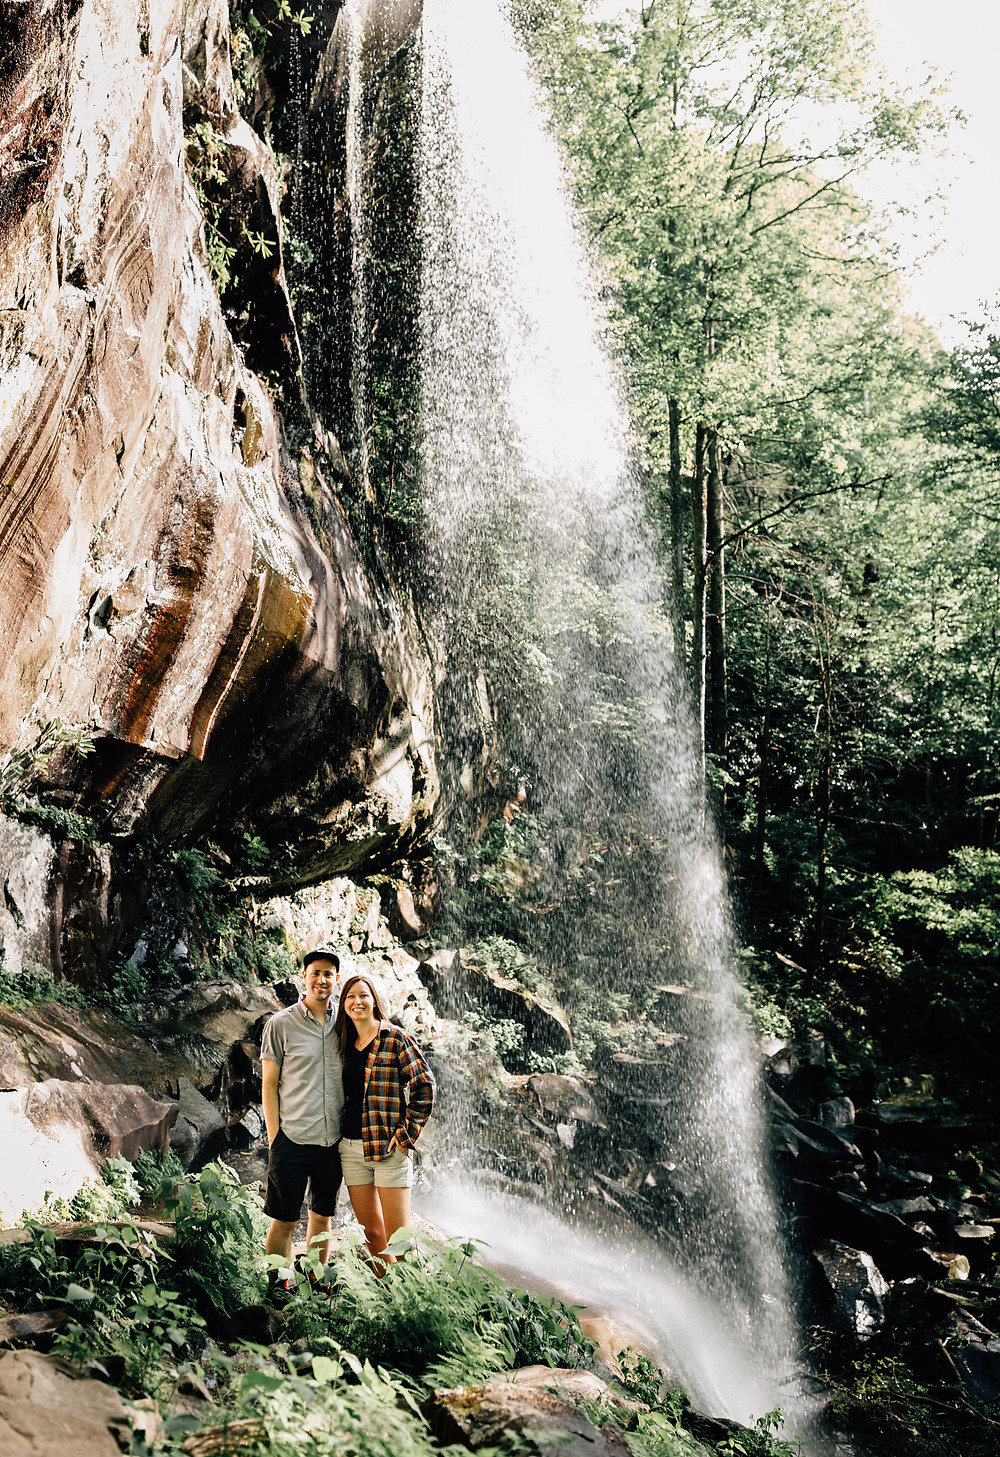 Rainbow Falls in Tennessee